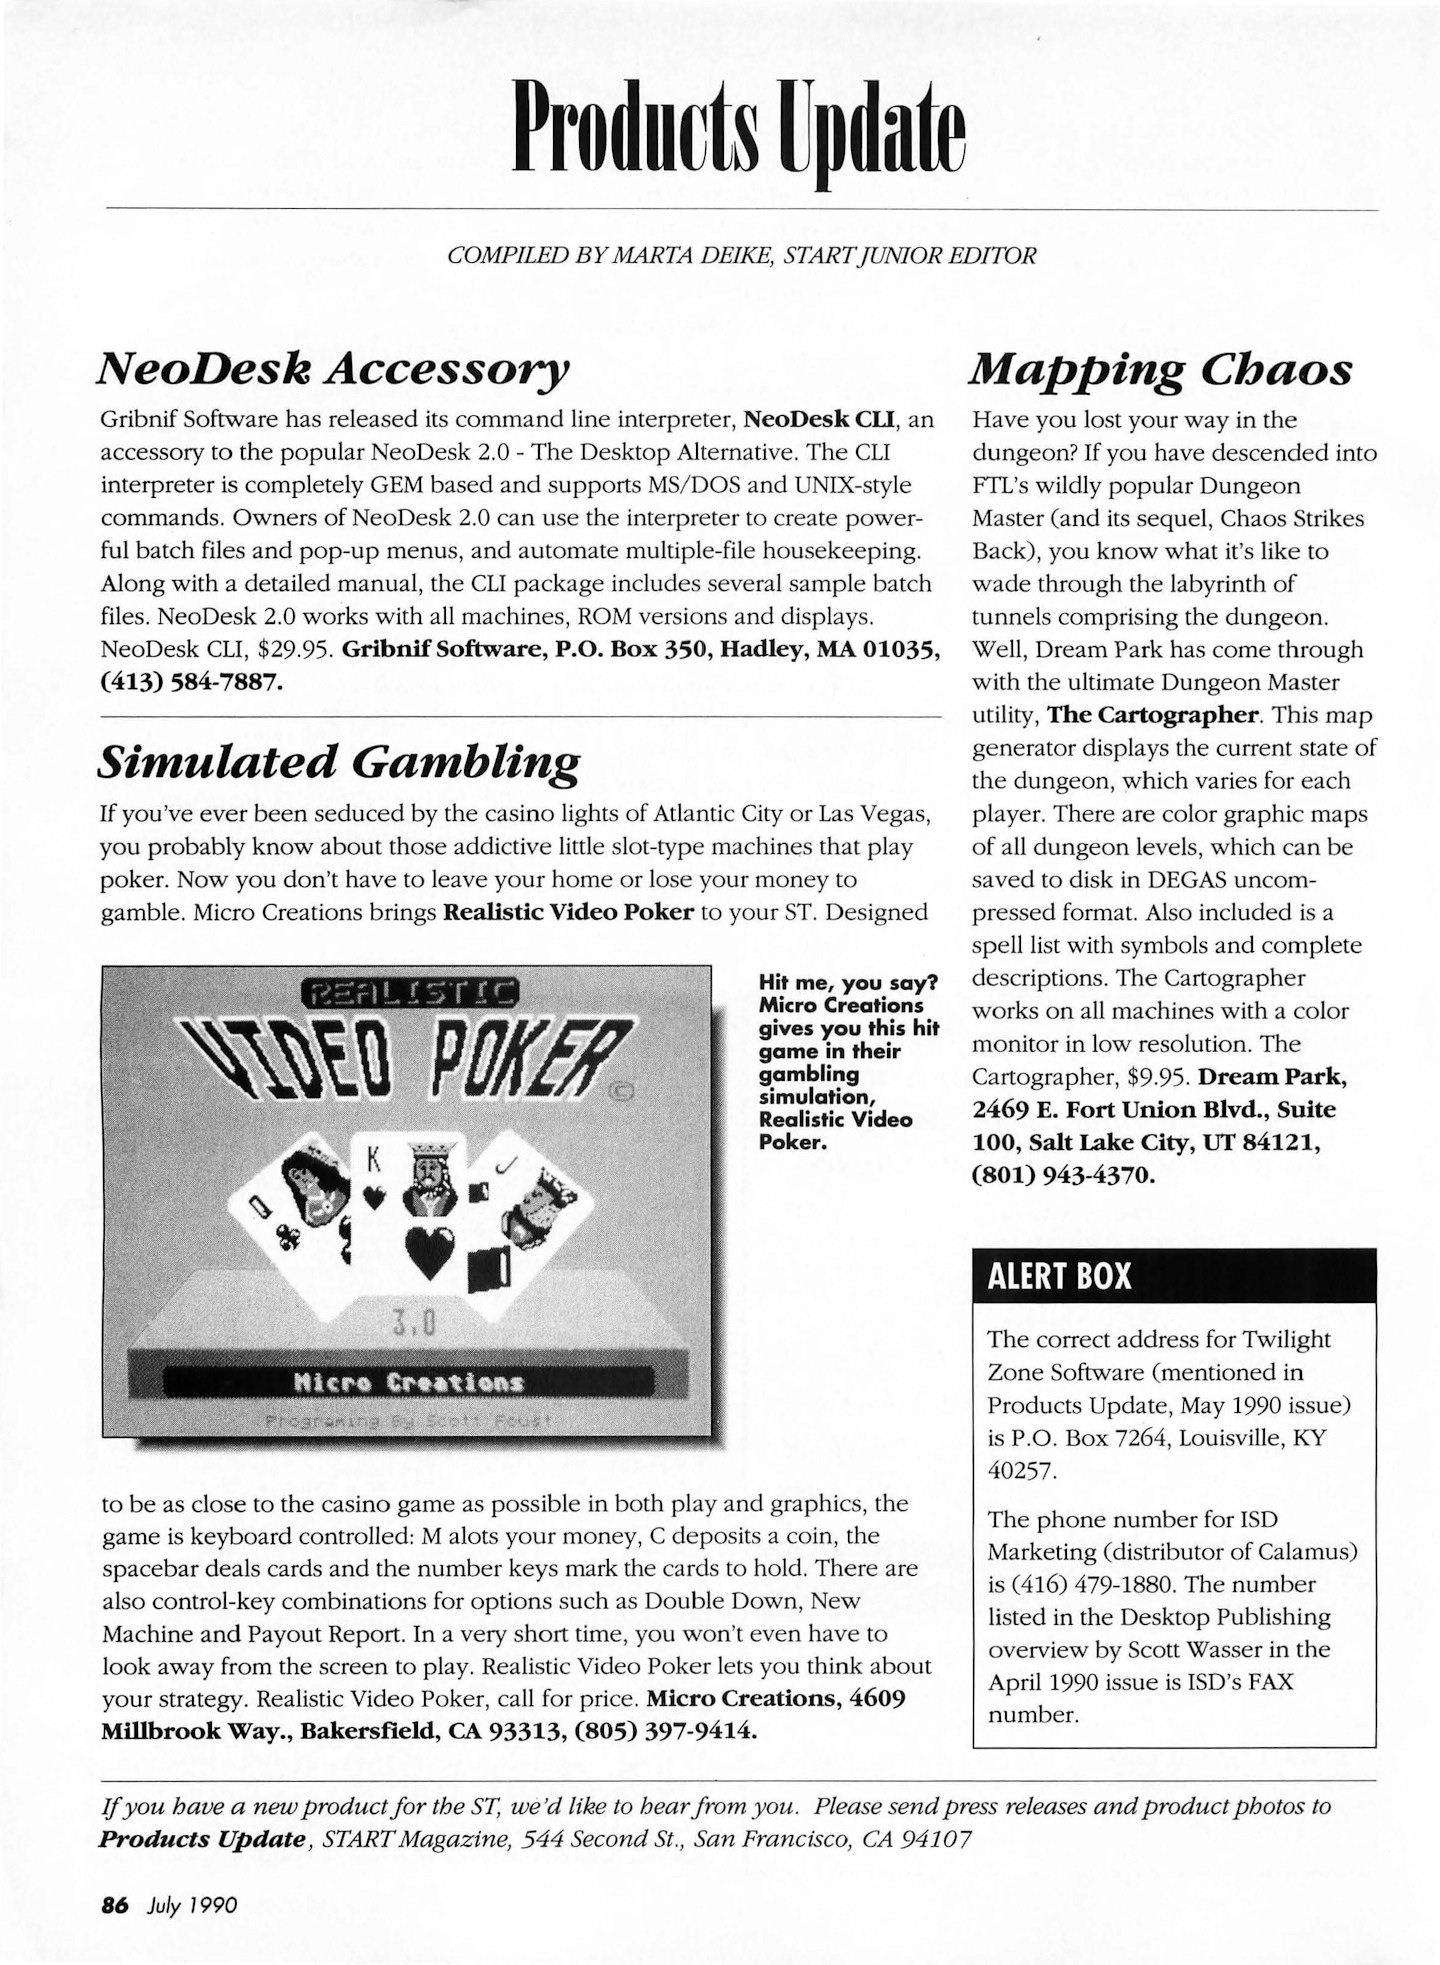 The Cartographer for Atari ST Preview published in American magazine 'Start', Vol 4 No 12 July 1990, Page 86